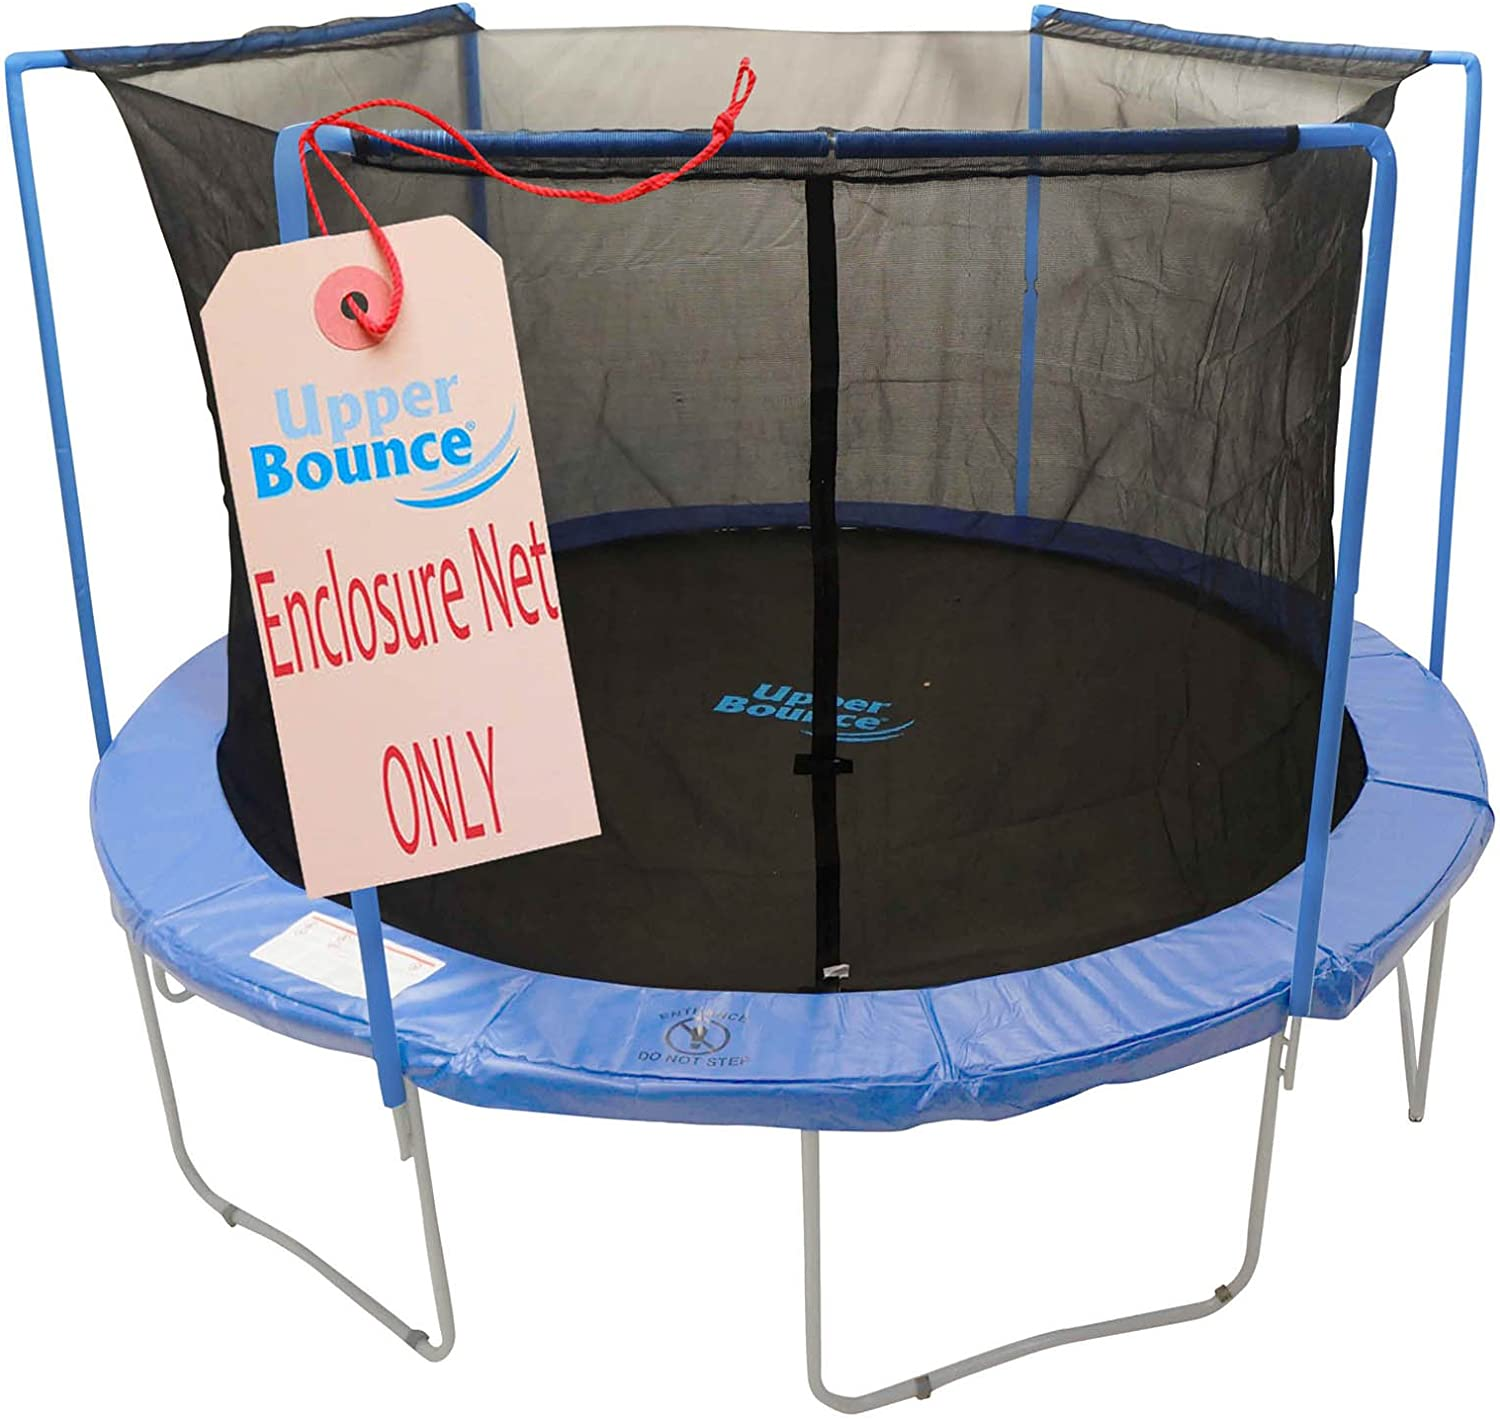 Upper Bounce Replacement Safety Enclosure Net with Top Sleeves